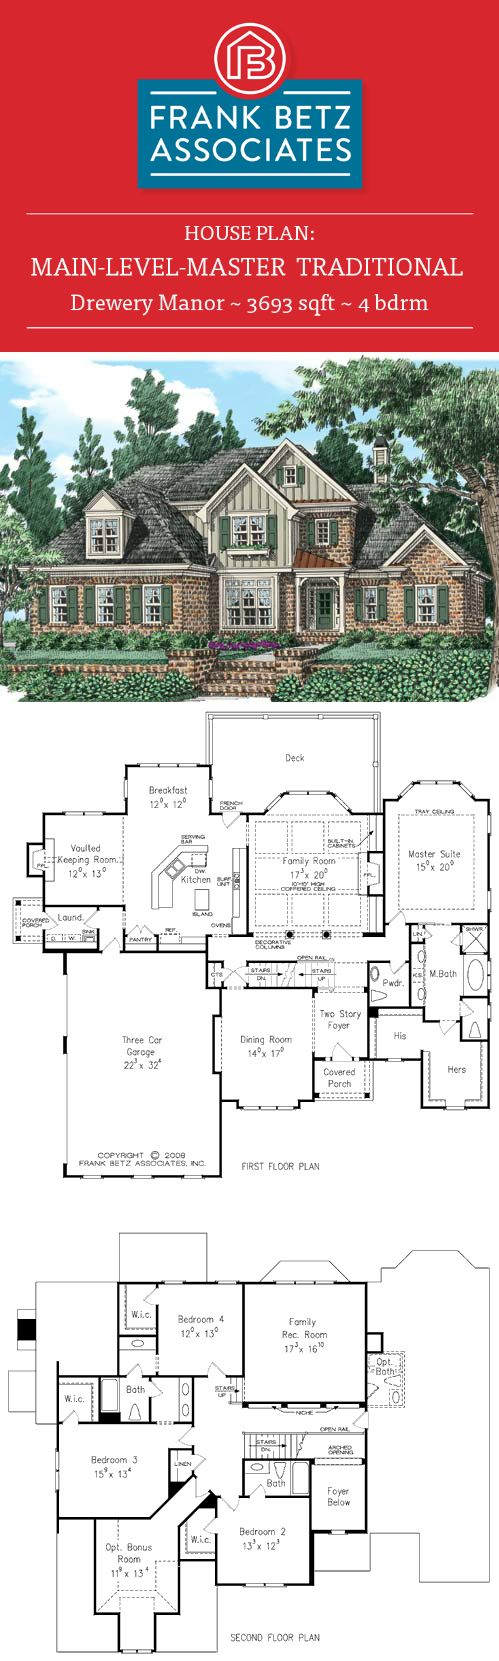 Drewery manor 3693 sqft 4 bdrm traditional house plan design by frank betz